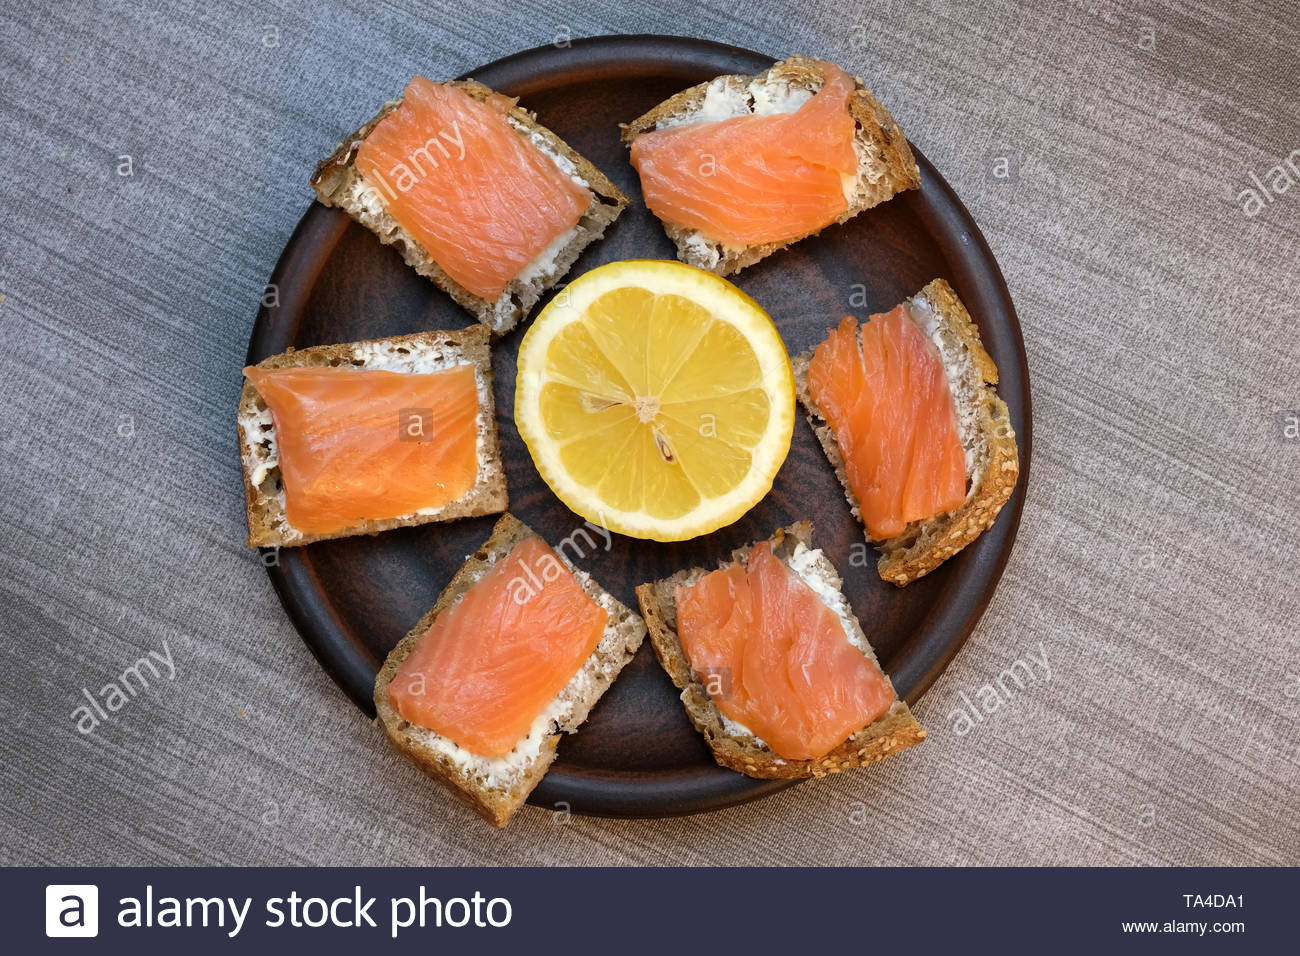 Small sandwiches on homemade bread with butter and red fish on a brown clay plate on a table with a gray tablecloth - Stock Image